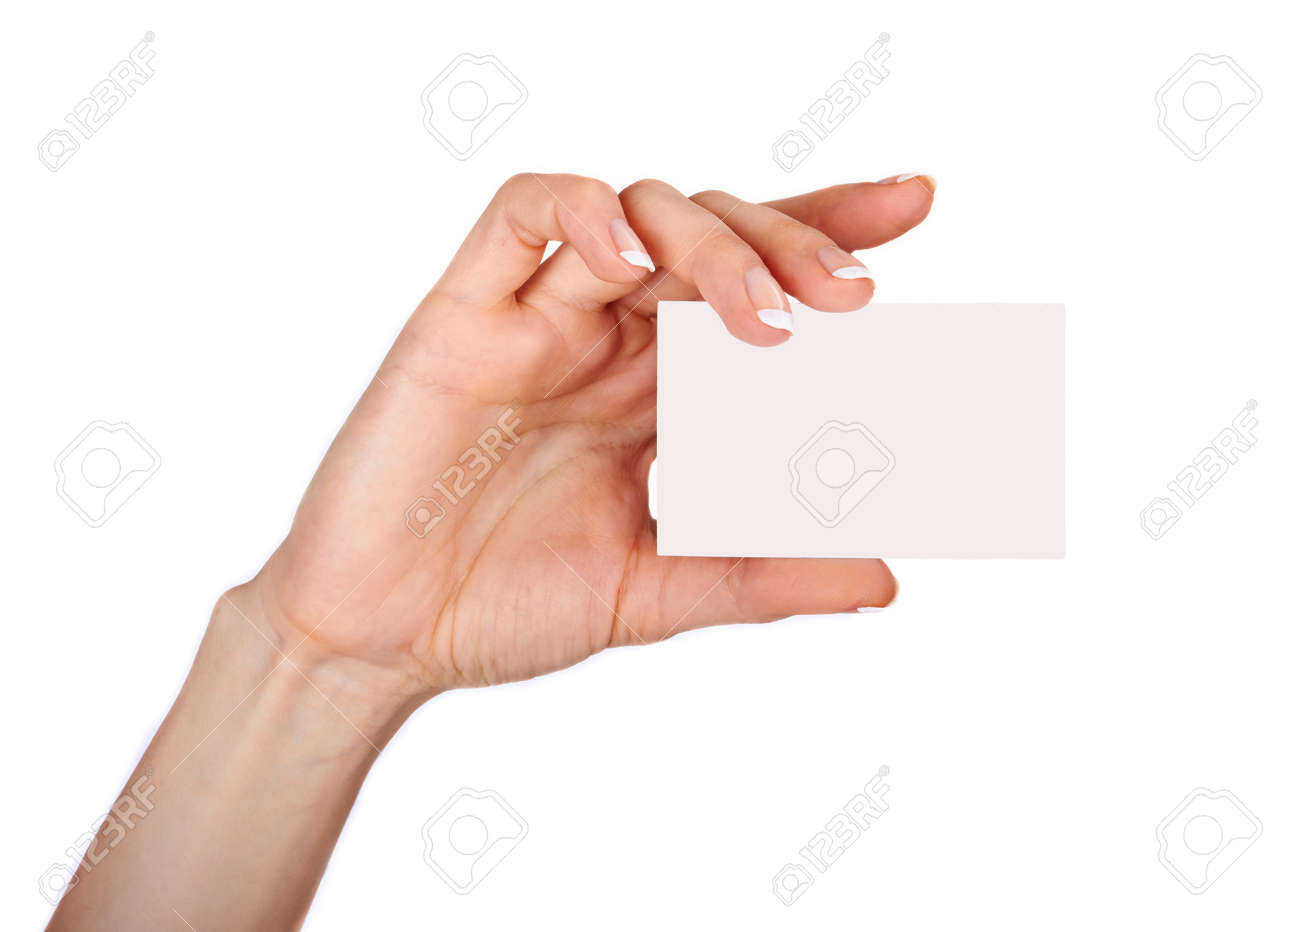 Female hand with a blank card isolated on white background Stock Photo - 18287207